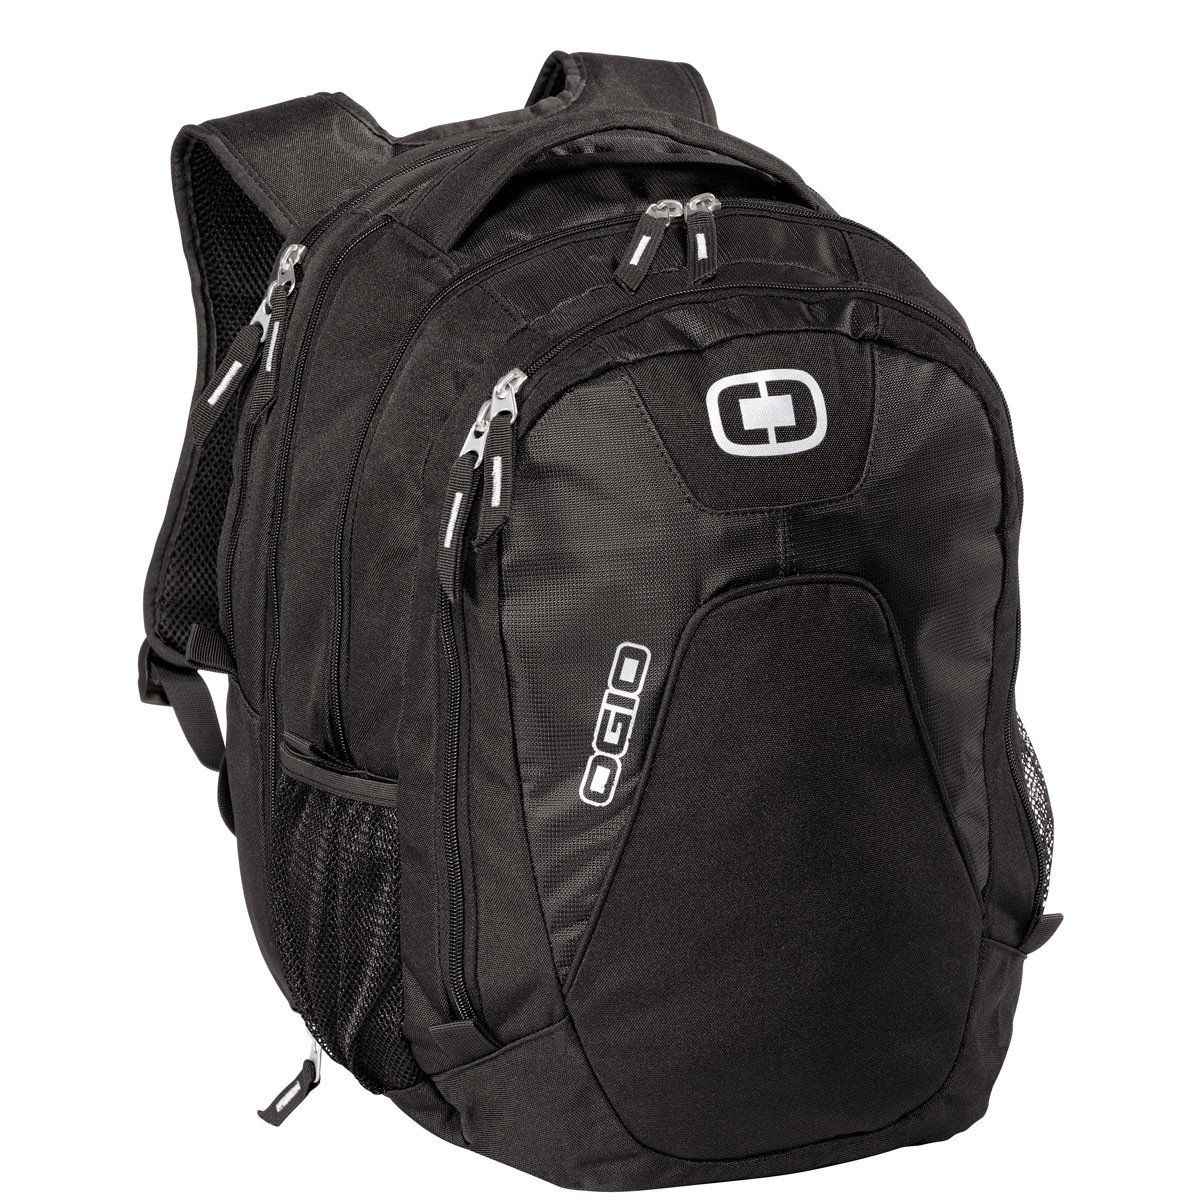 OGIO Black Juggernaut Backpack | Backpacks and Products